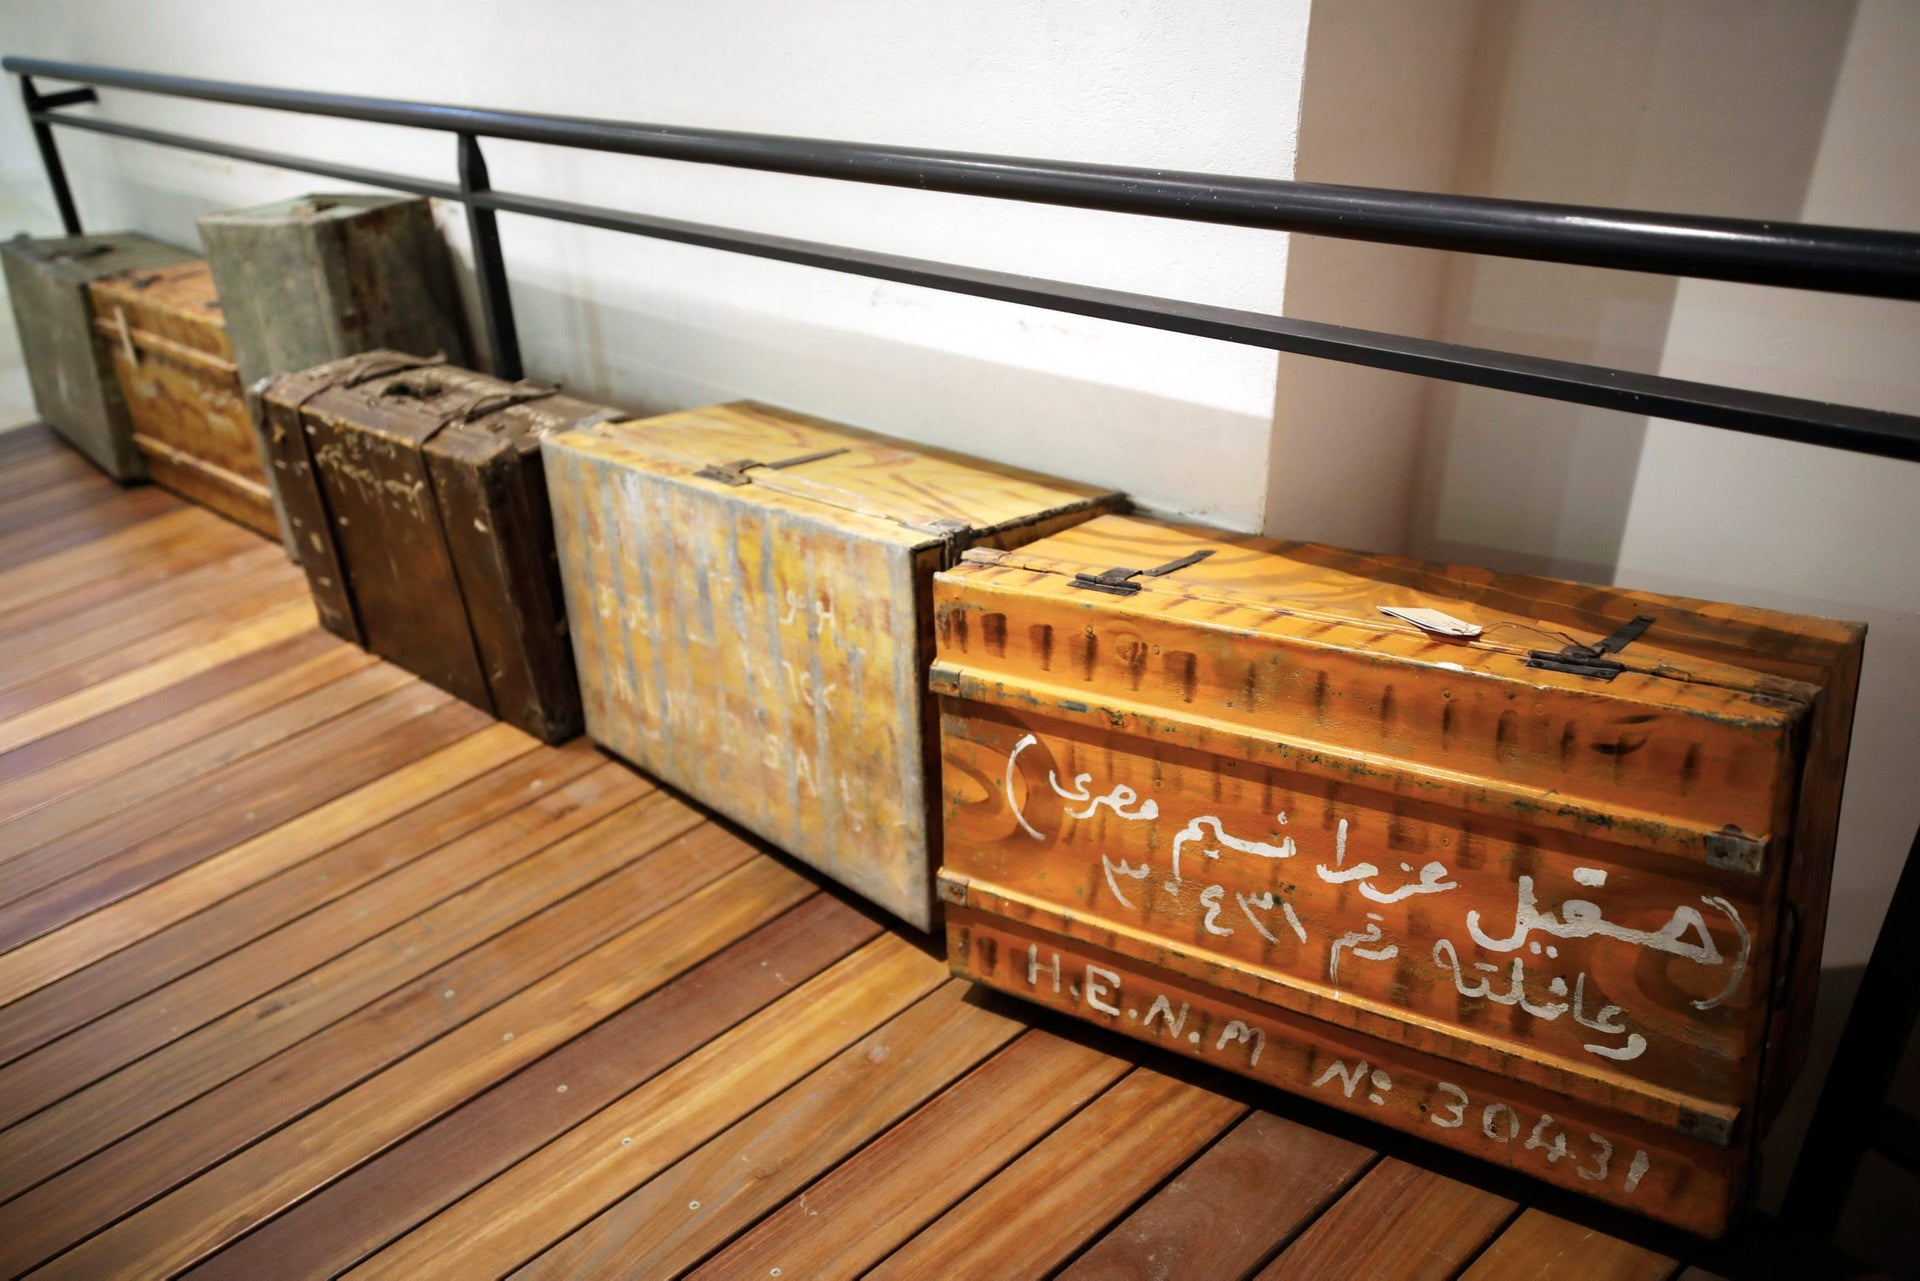 Original suitcases used by Jews who immigrated from Iraq to Israel are seen on display at the Babylonian Jewry Heritage Center in Or Yehuda, Israel, April 16, 2018.